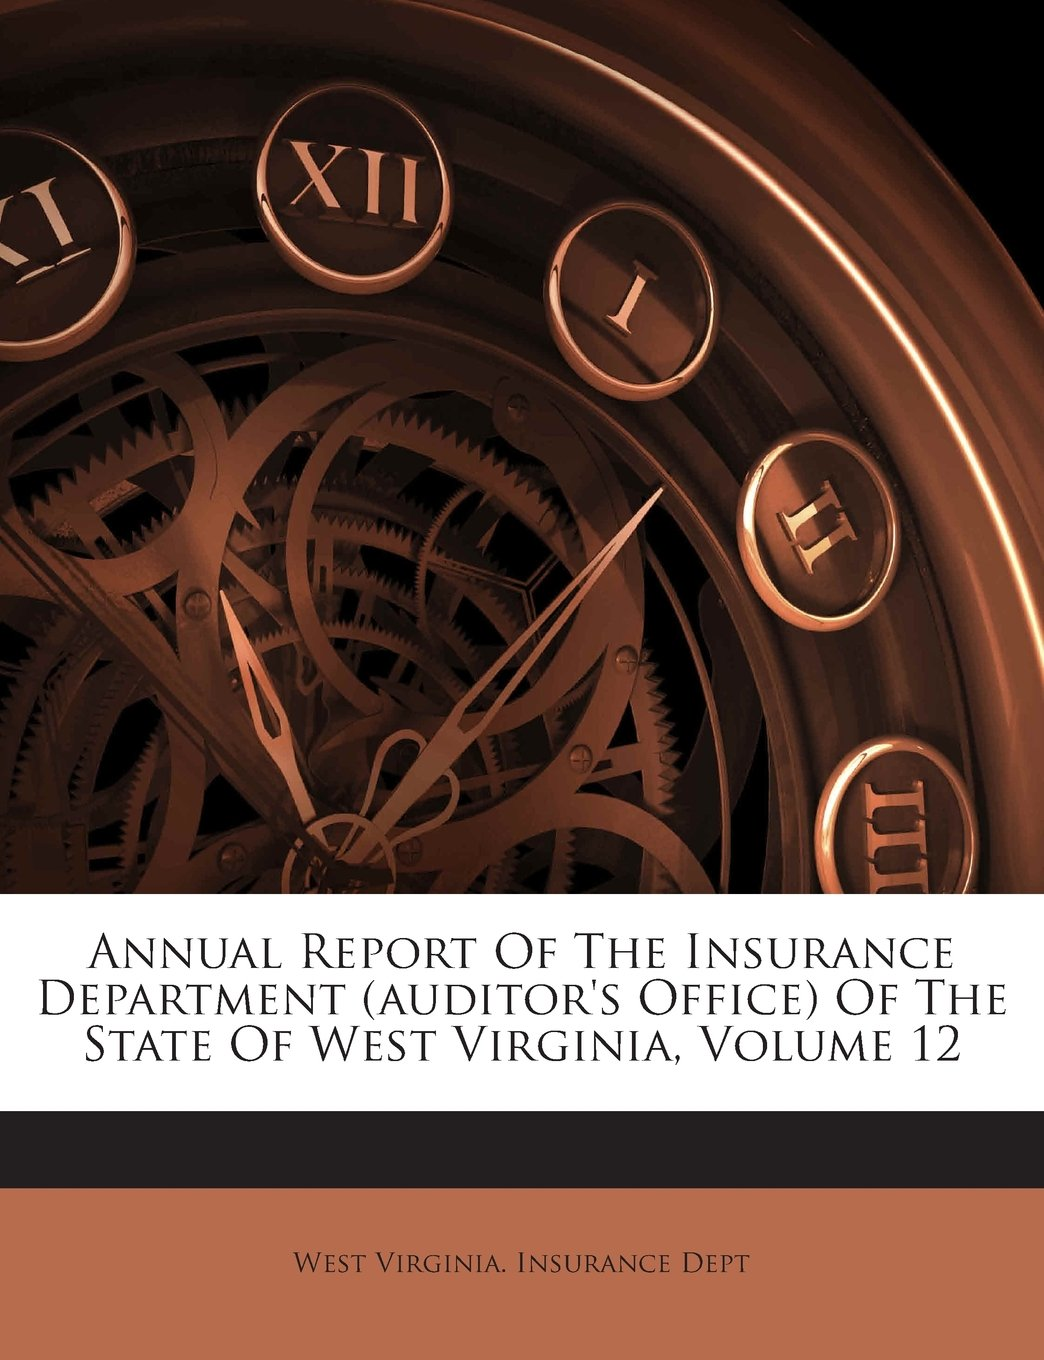 Annual Report Of The Insurance Department (auditor's Office) Of The State Of West Virginia, Volume 12 ebook